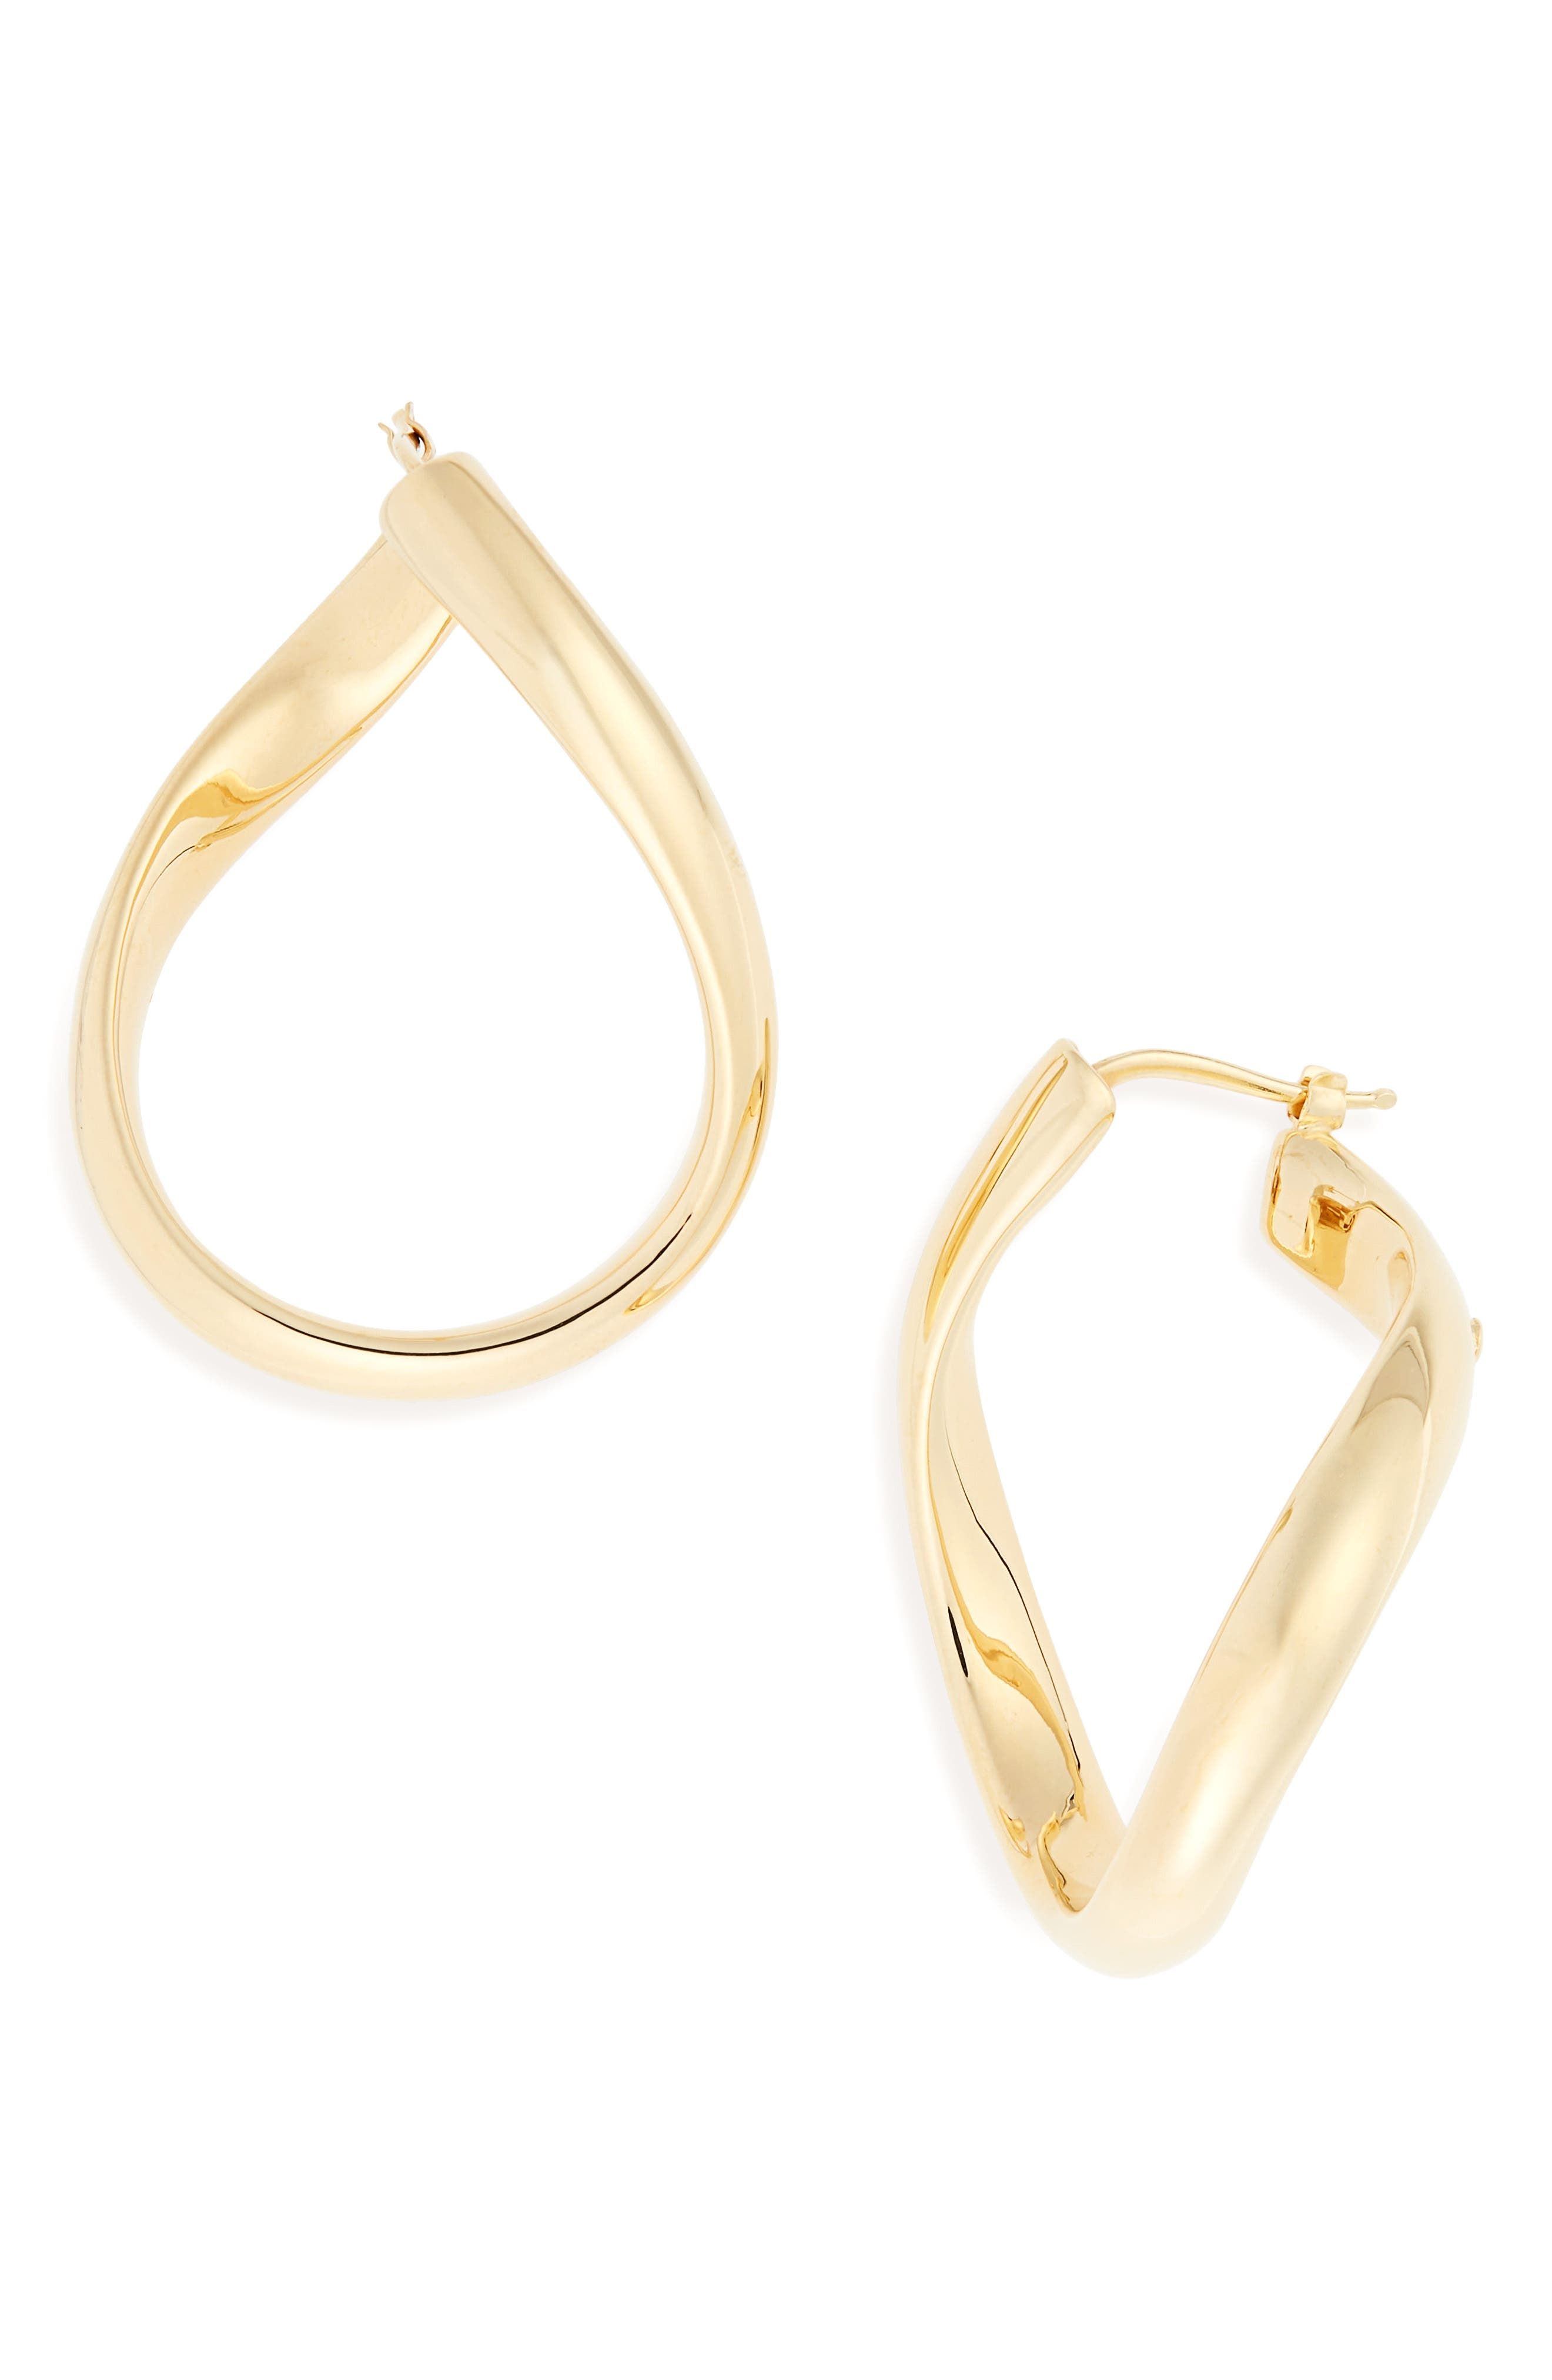 Classic Oro 18K Gold Hoop Earrings,                         Main,                         color, YELLOW GOLD